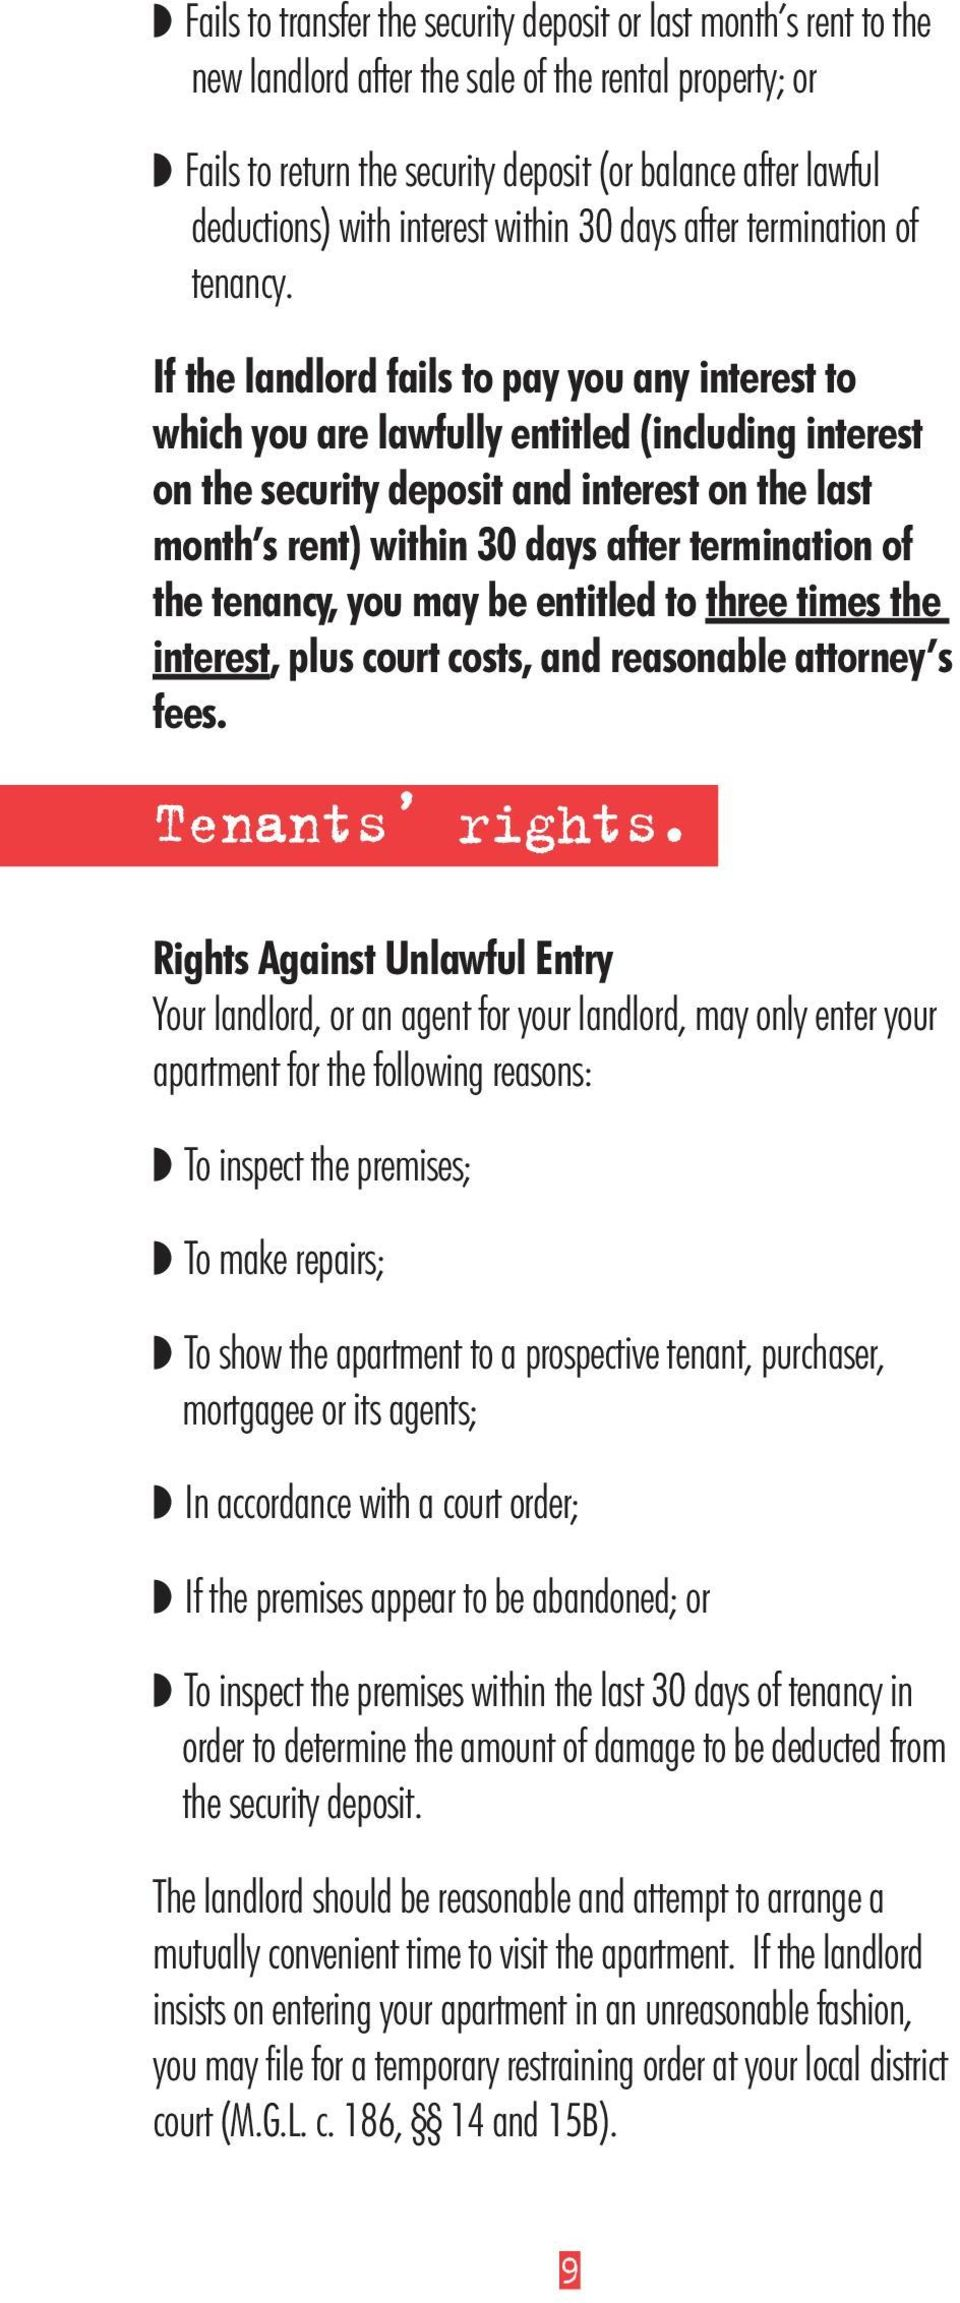 If the landlord fails to pay you any interest to which you are lawfully entitled (including interest on the security deposit and interest on the last month s rent) within 30 days after termination of